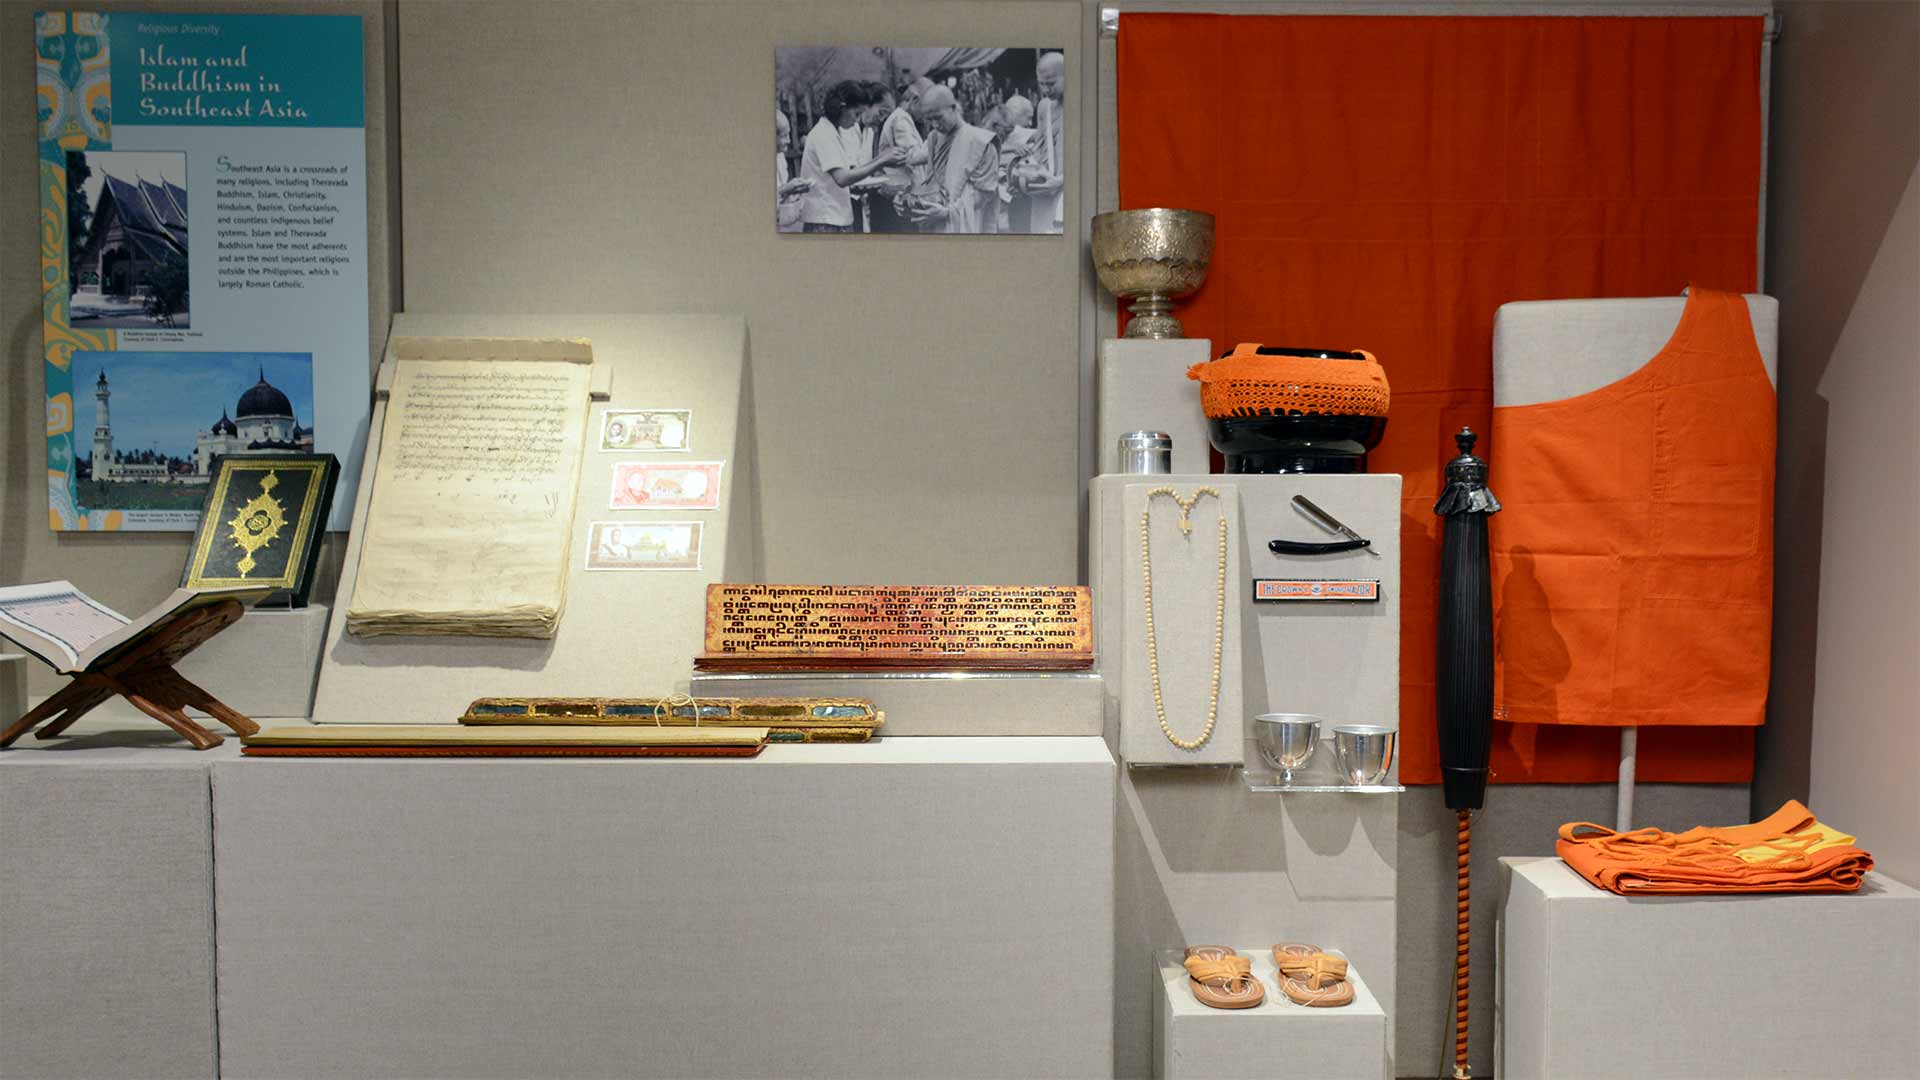 exhibit case photo with monk possessions